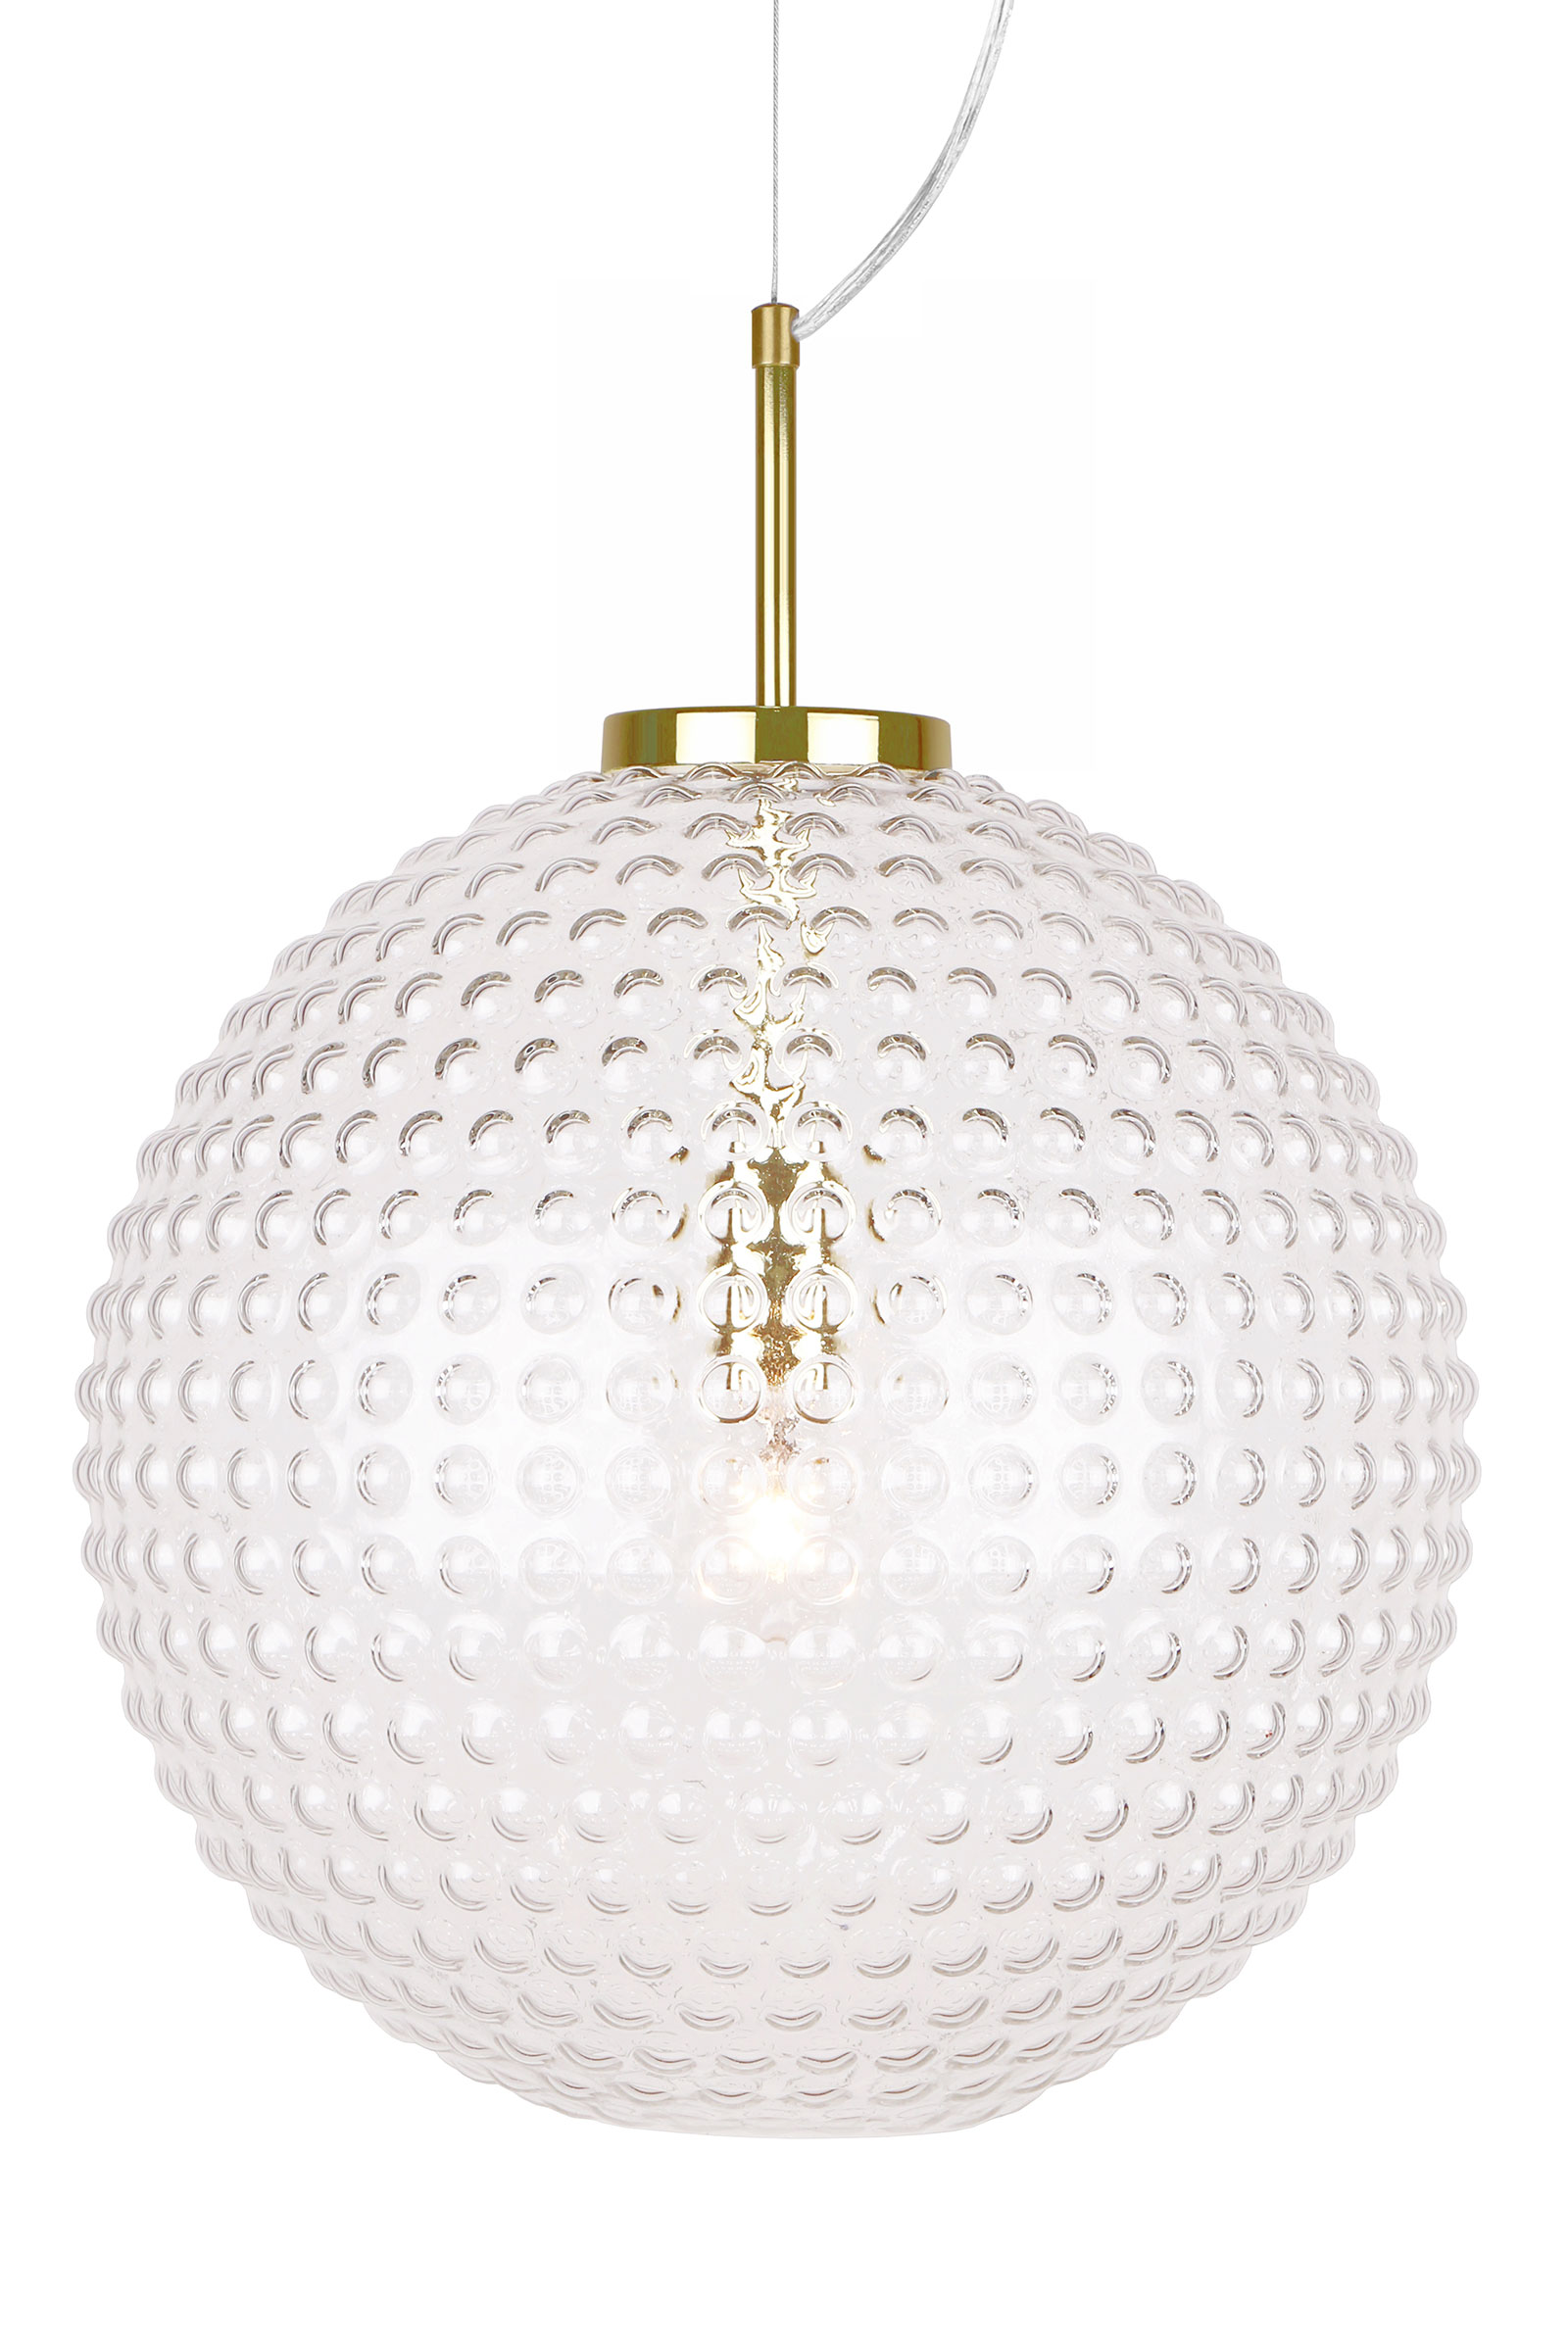 on messing ansicht lampe beton light brass hell tisch shop bcber pendant crowdyhouse